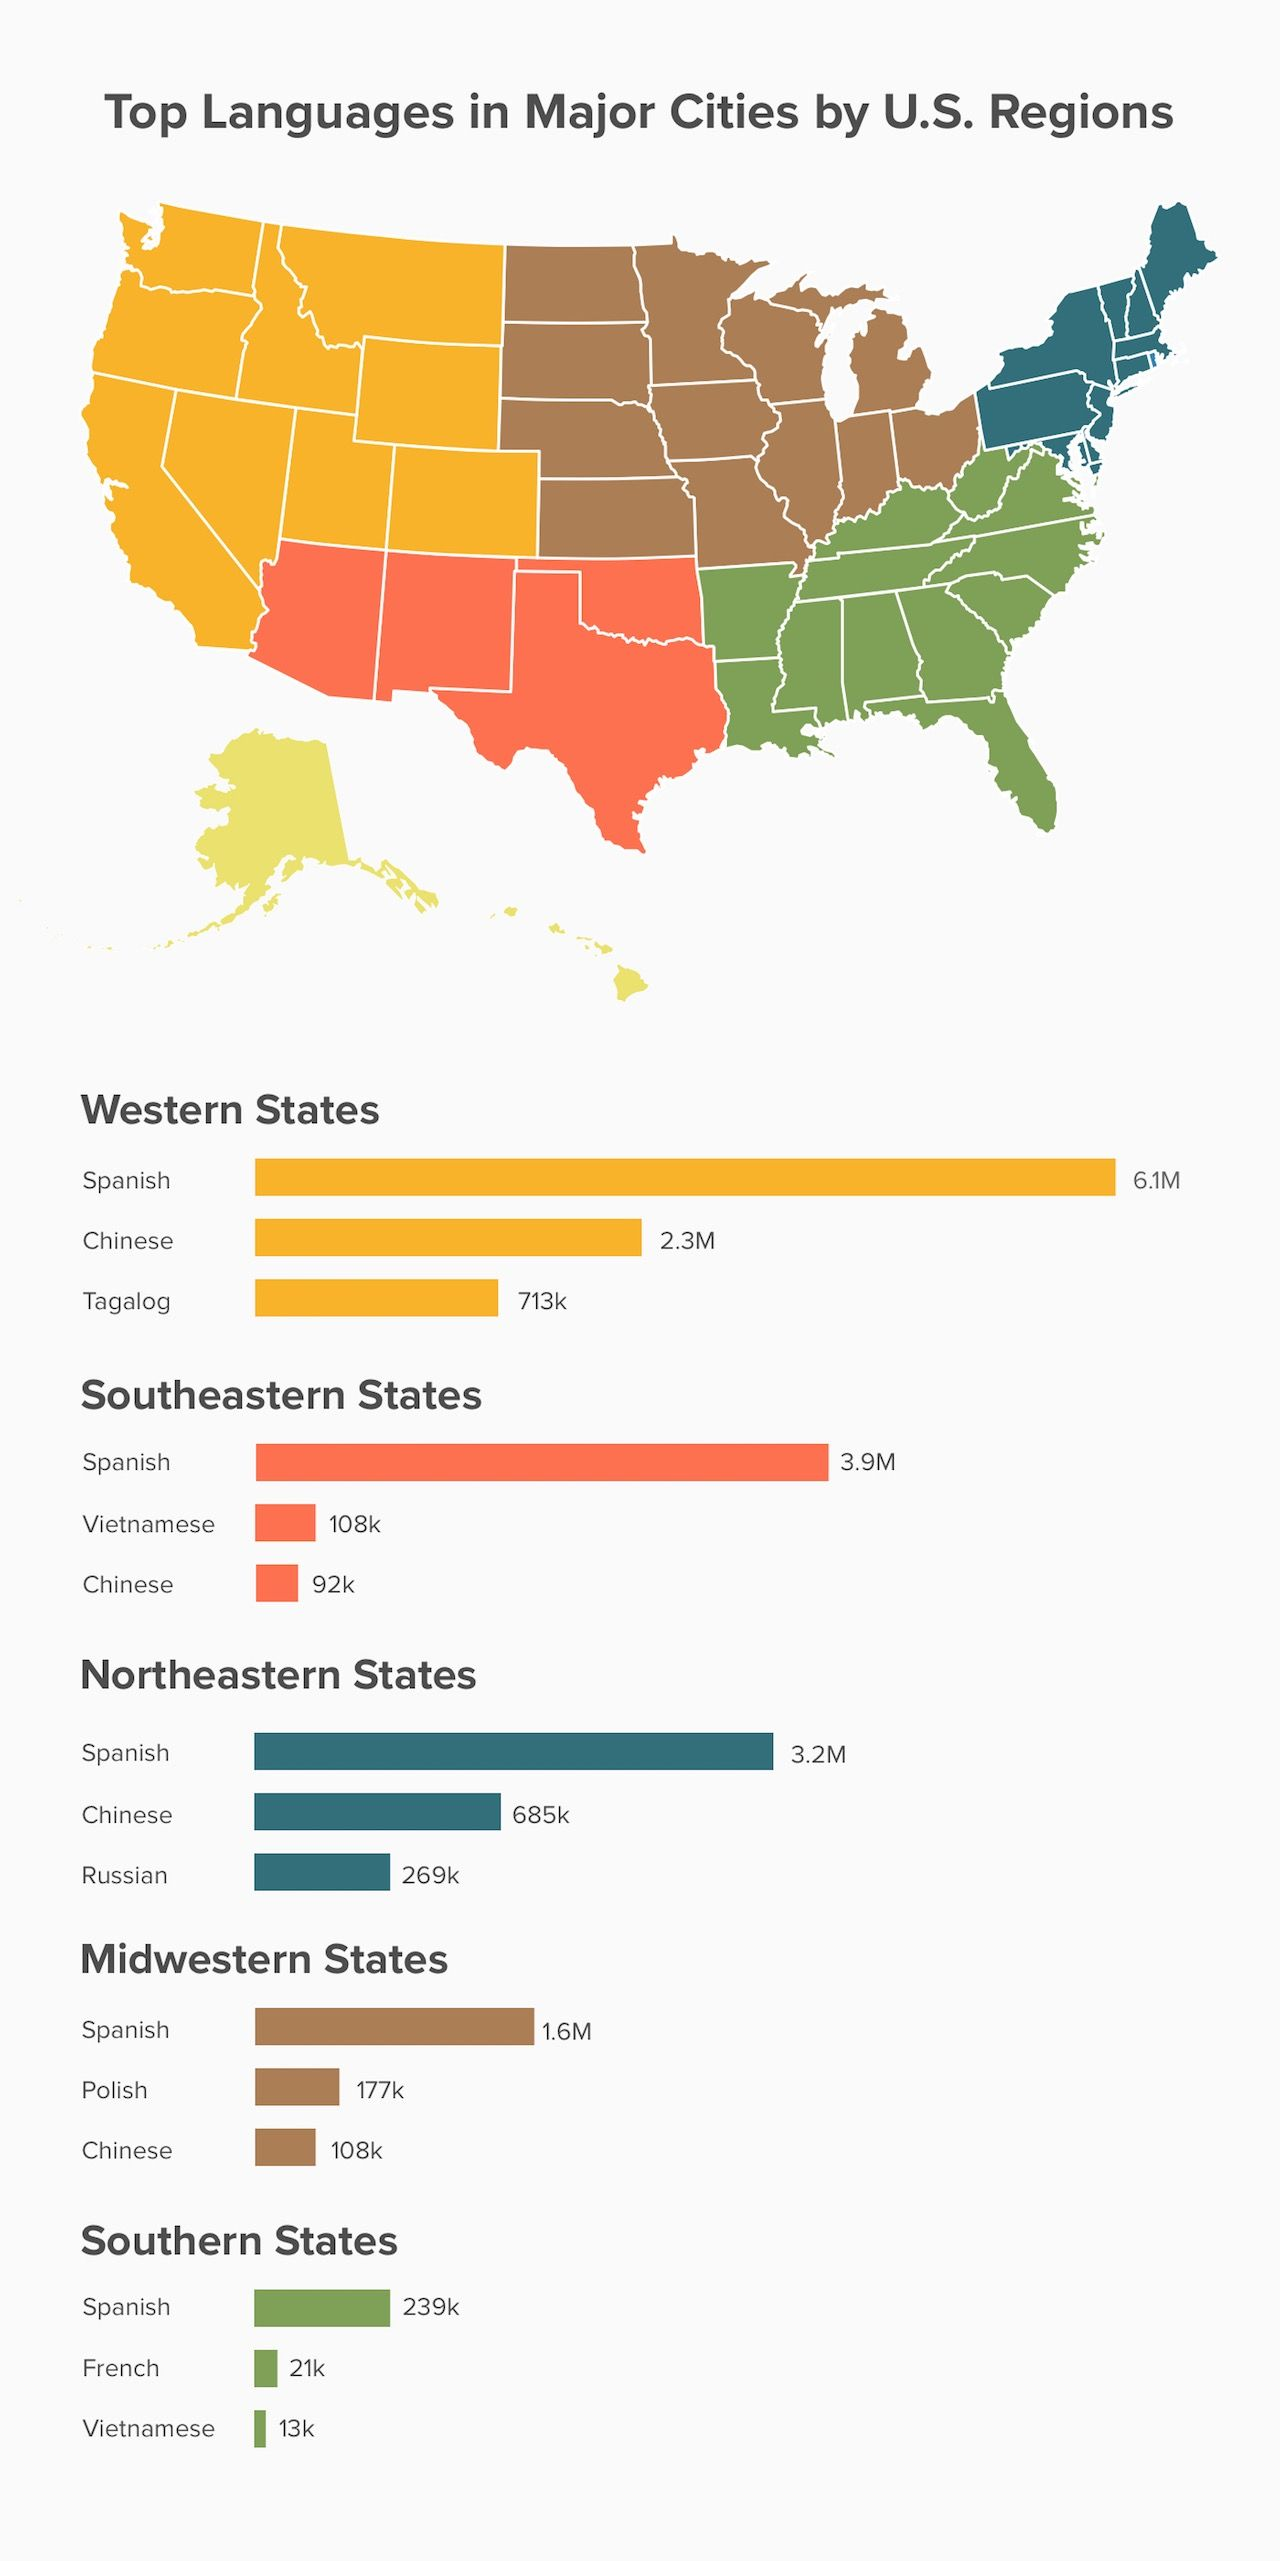 non-english languages in the US by Regions